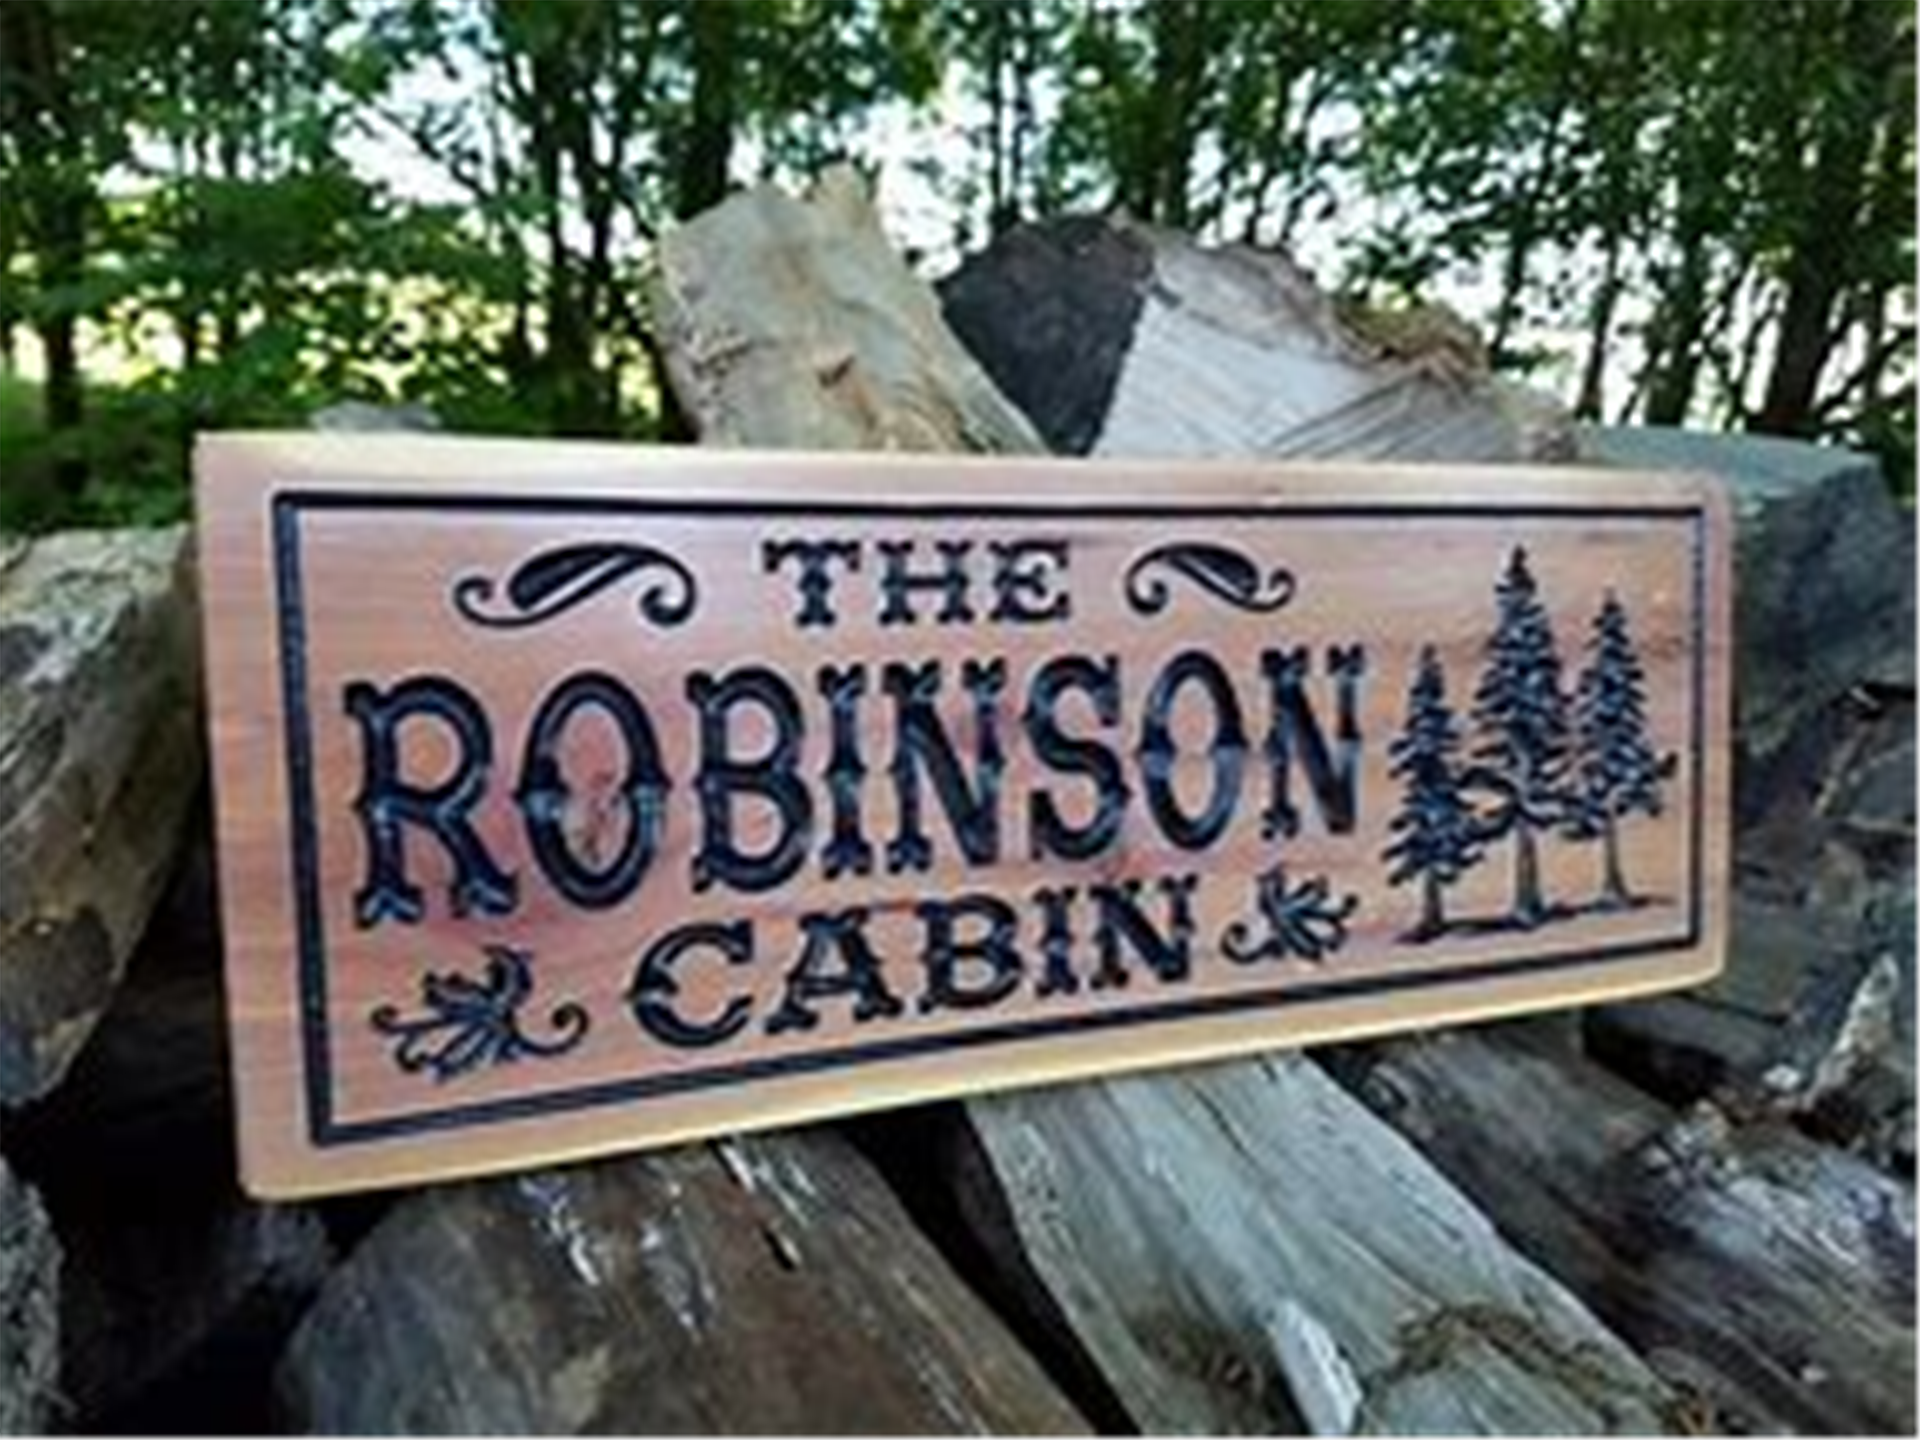 """rectangle wooden sign placed on top of wooden logs with trees in the background. """"THE ROBINSON CABIN"""" is engraved into the wooden sign along with 3 trees displayed next it."""